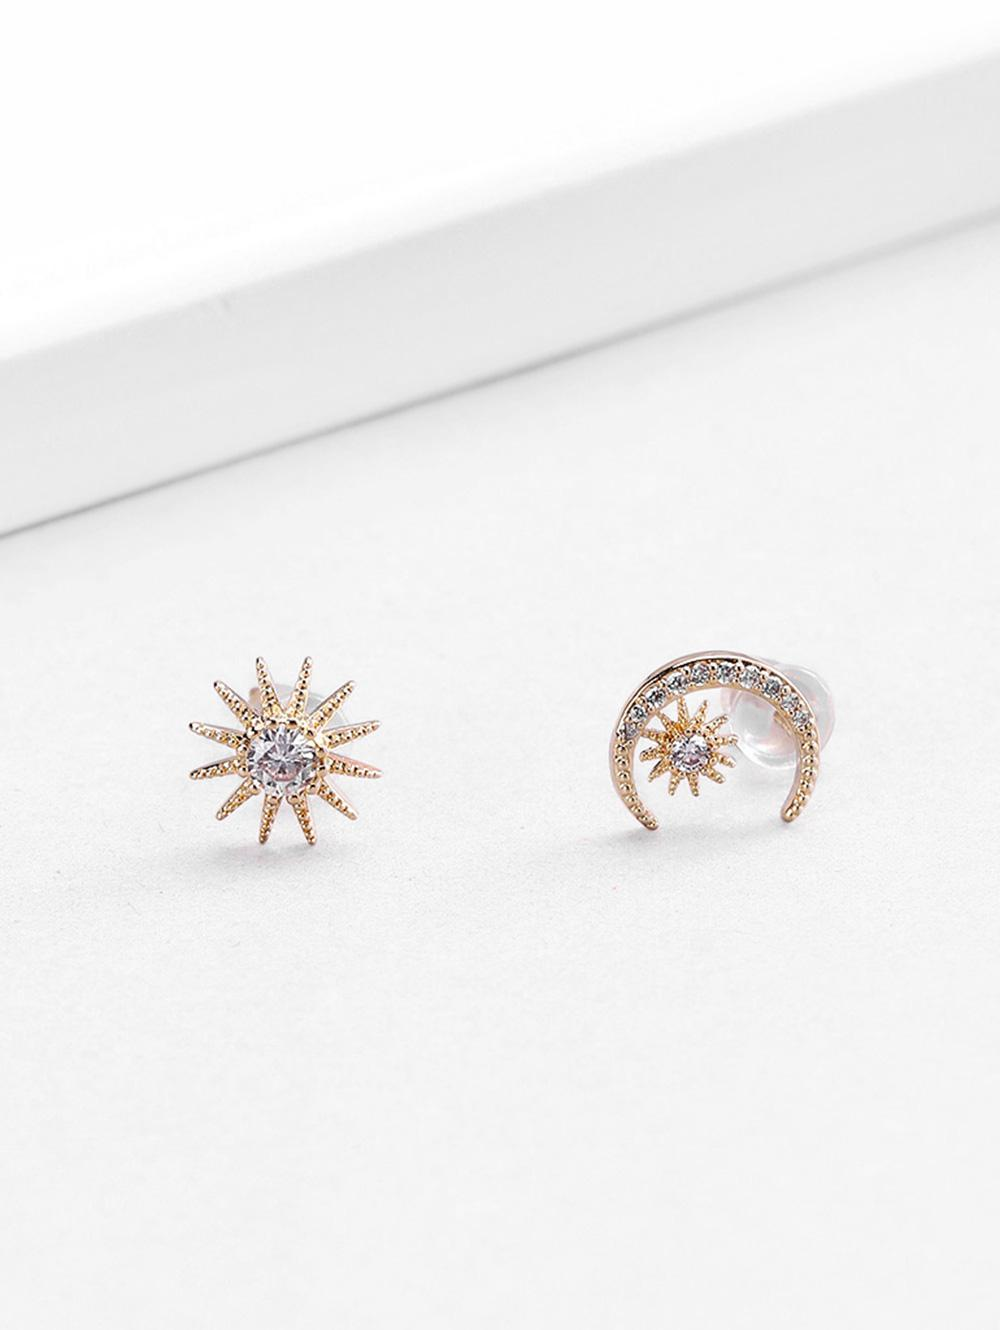 18K Gold Plated Zircon Embellished Moon Star Shape Stud Earrings